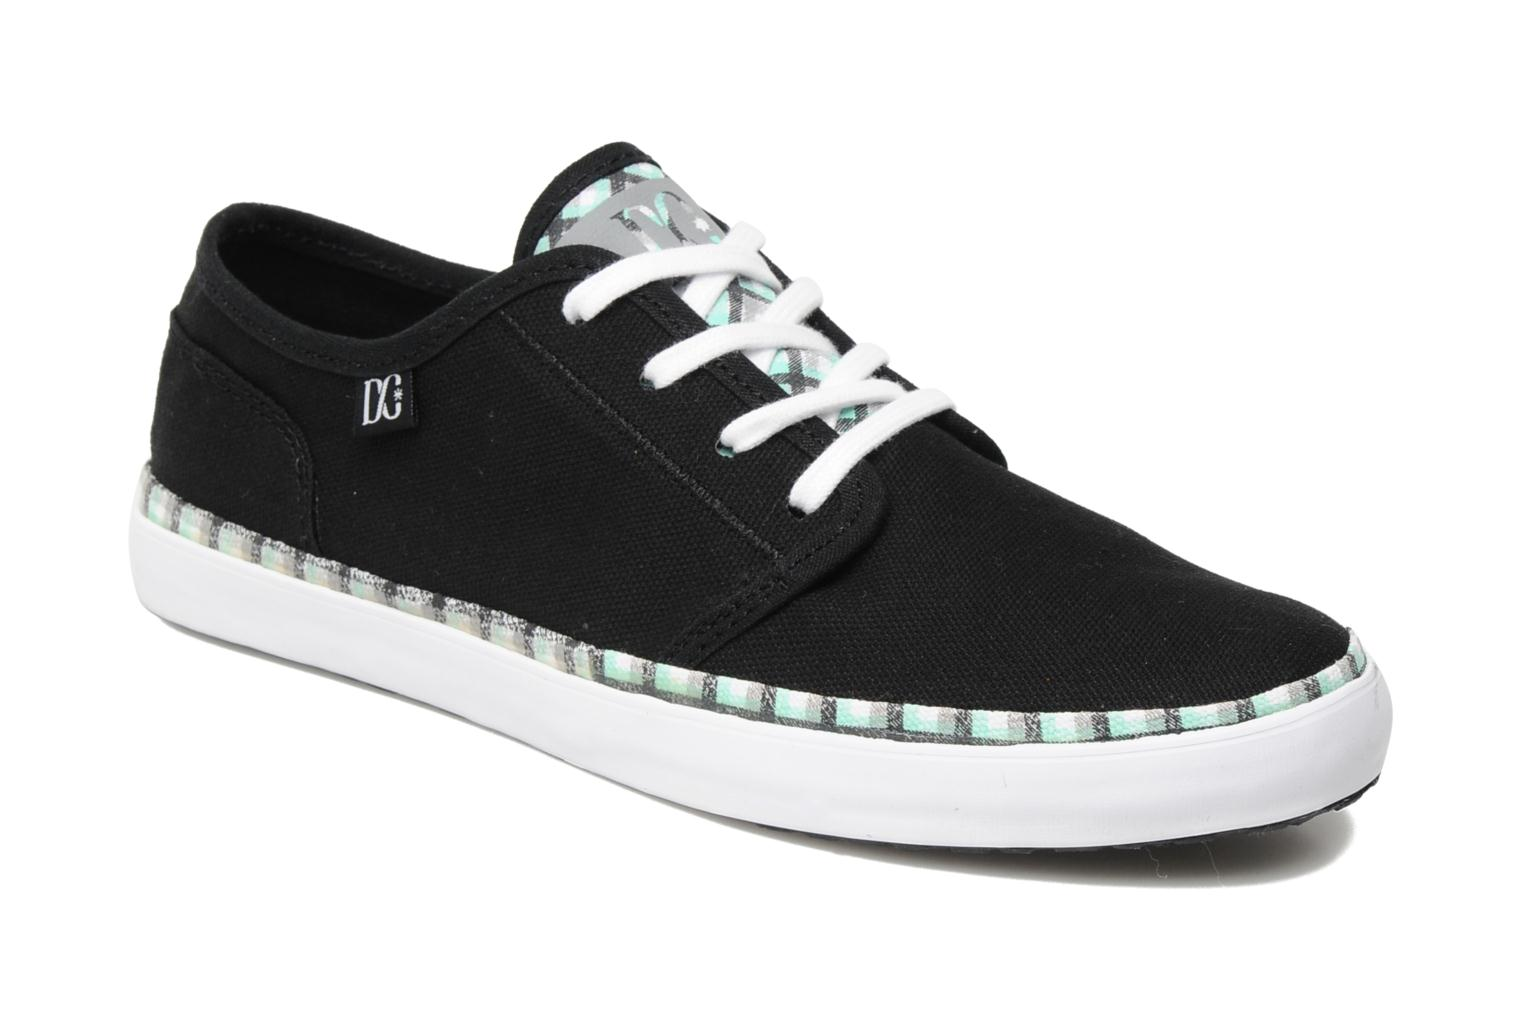 Chaussures Mode DC shoes STUDIO ... rHYs6V